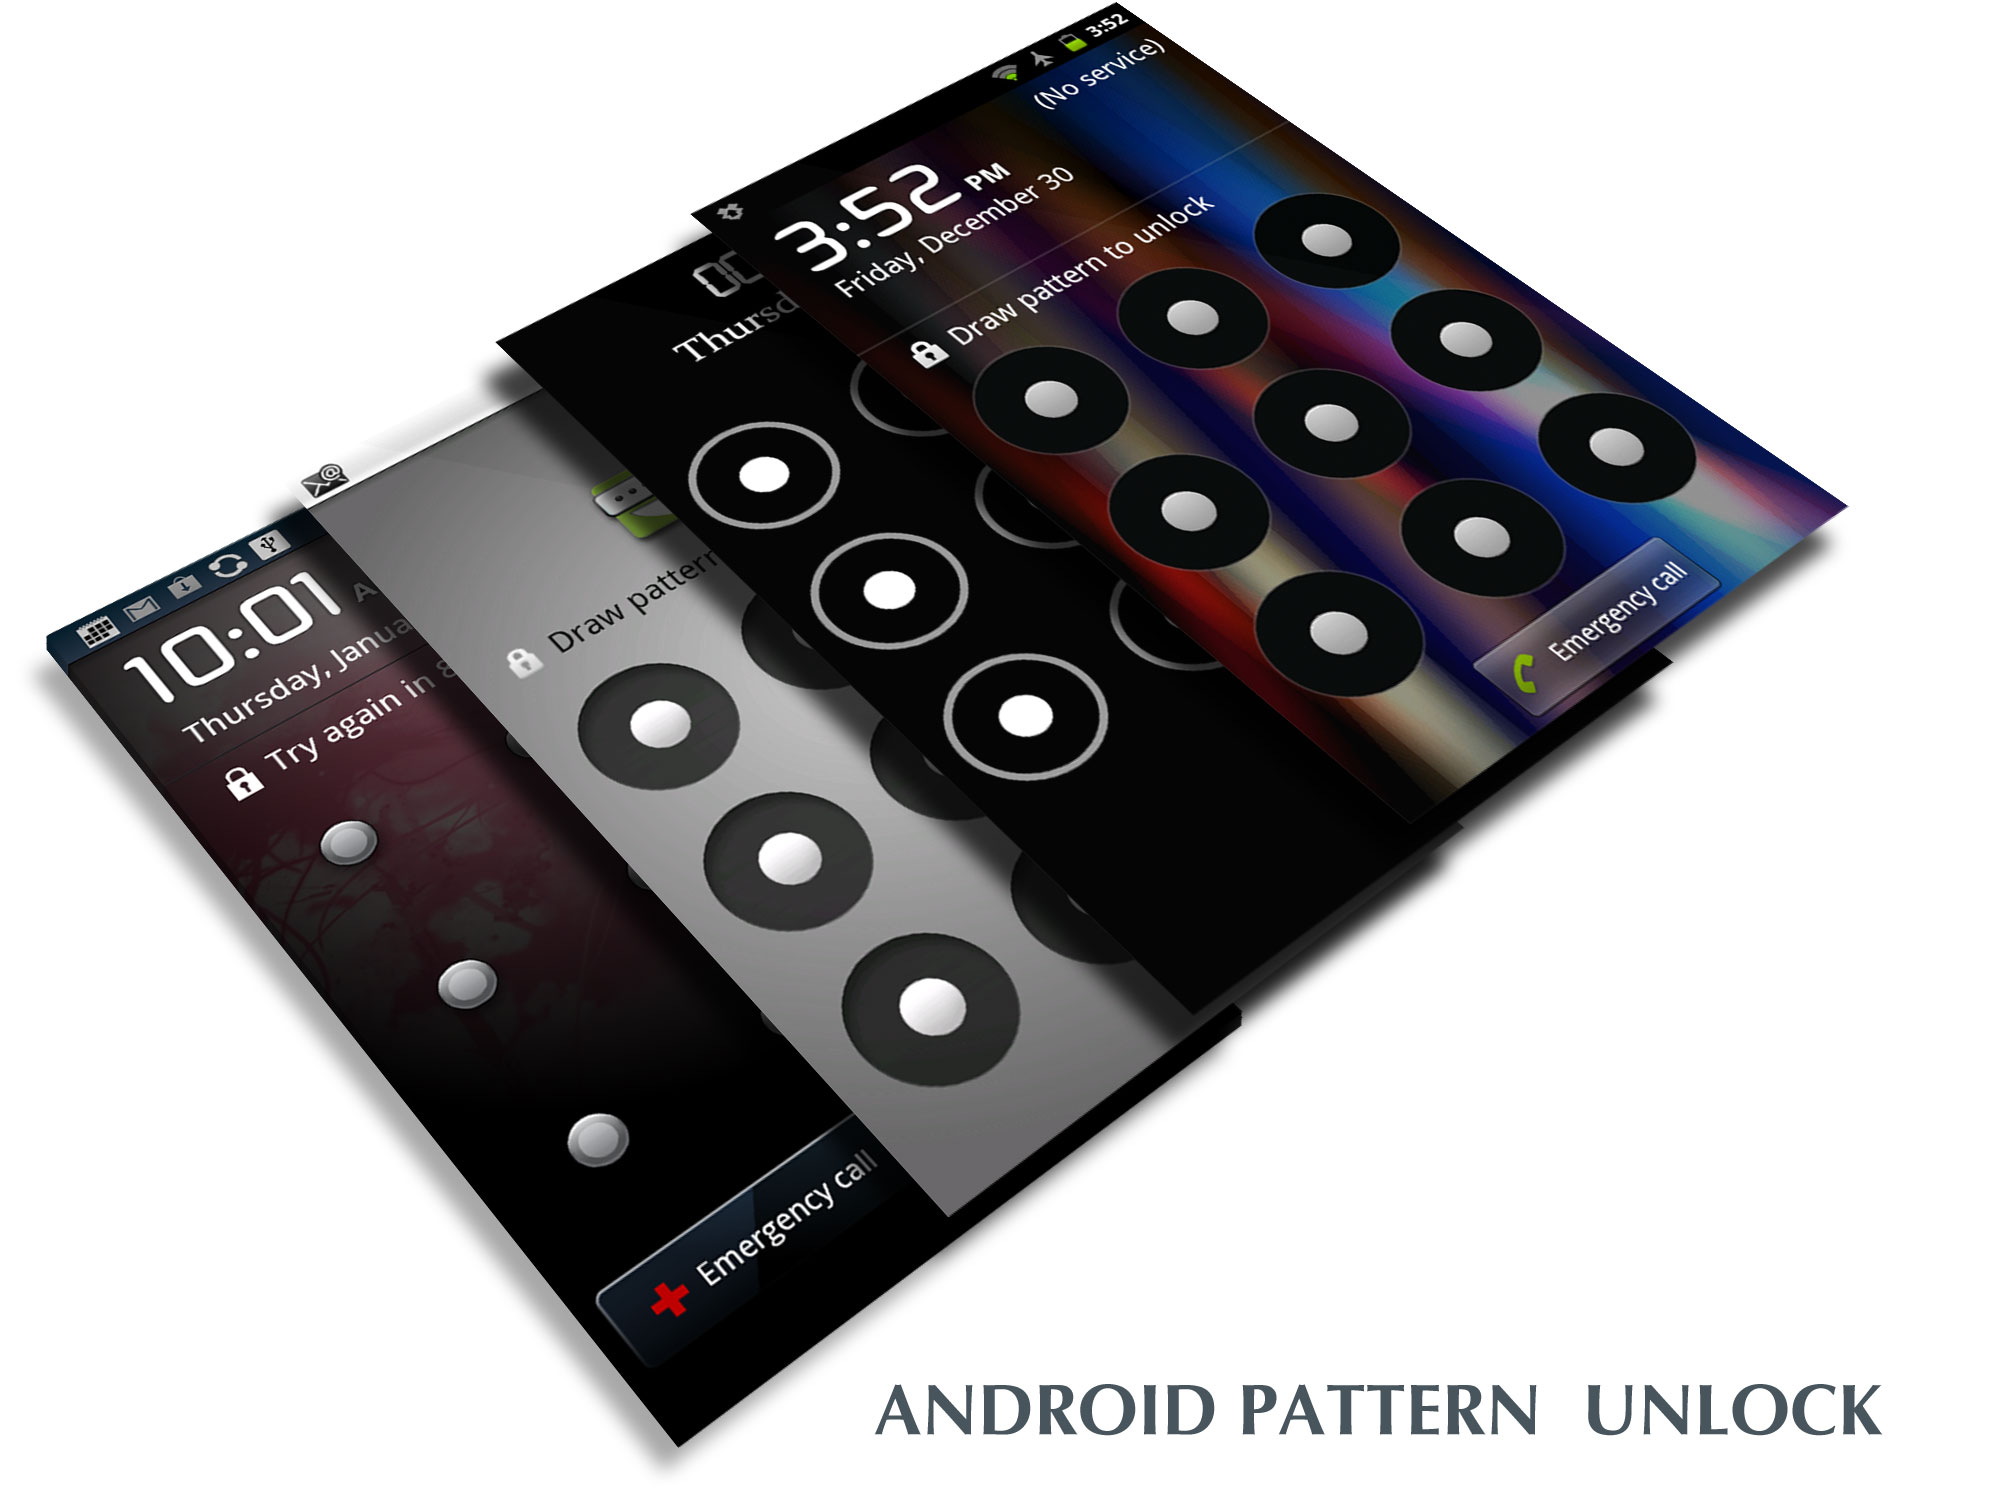 Unlocking android pattern screen lock – Complete Guide | HDB Team